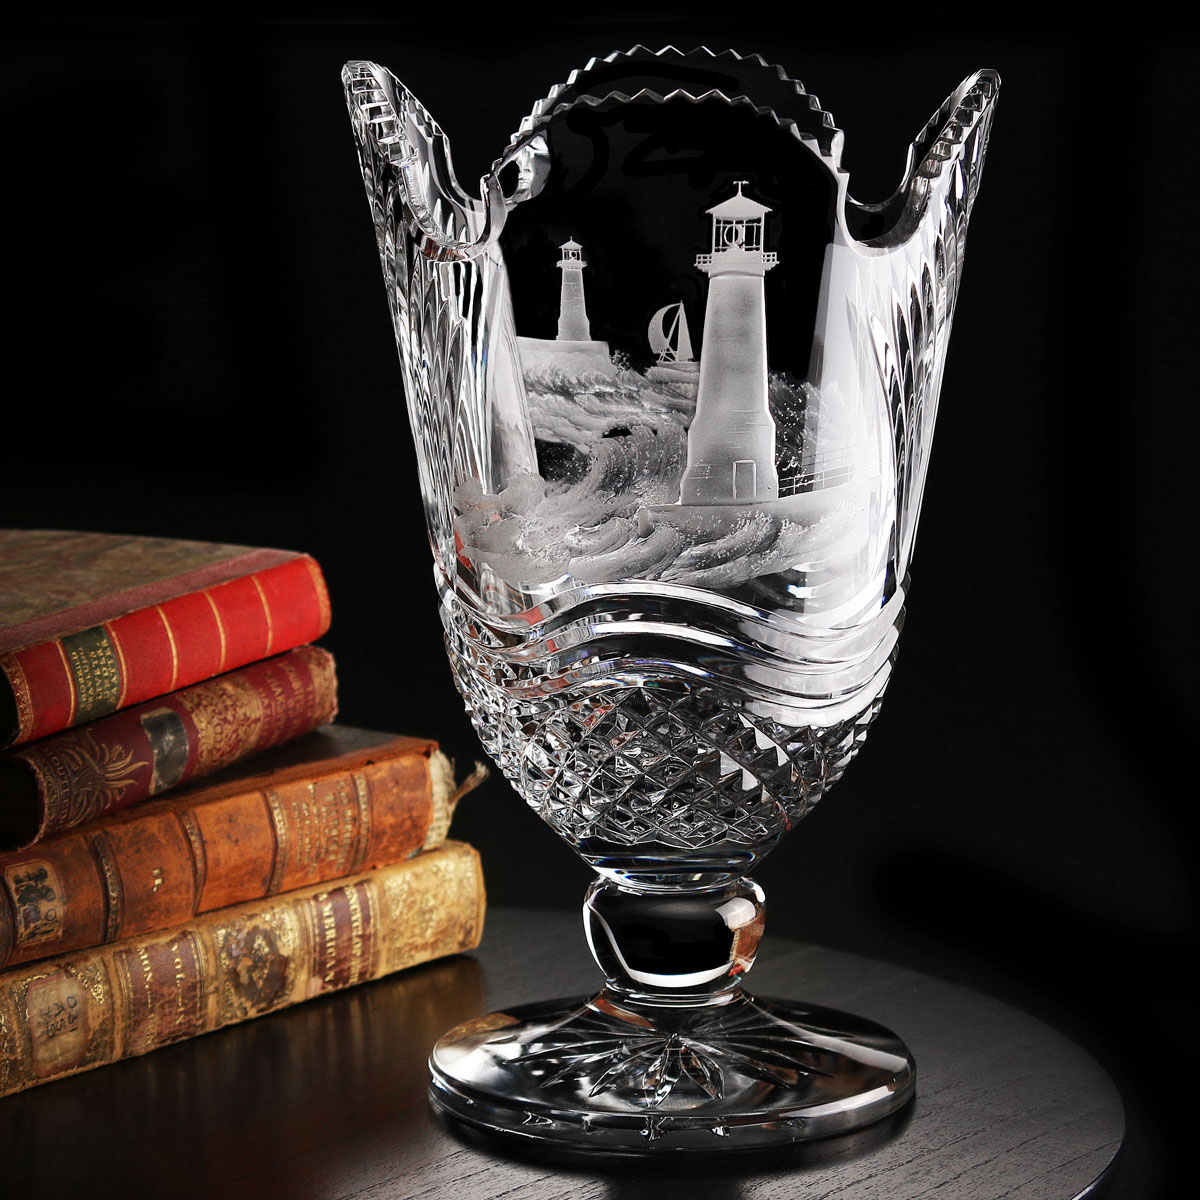 Cashs Ireland, Art Collection Lighthouse Series, By Hook or By Crook Crystal Vase, Limited Edition